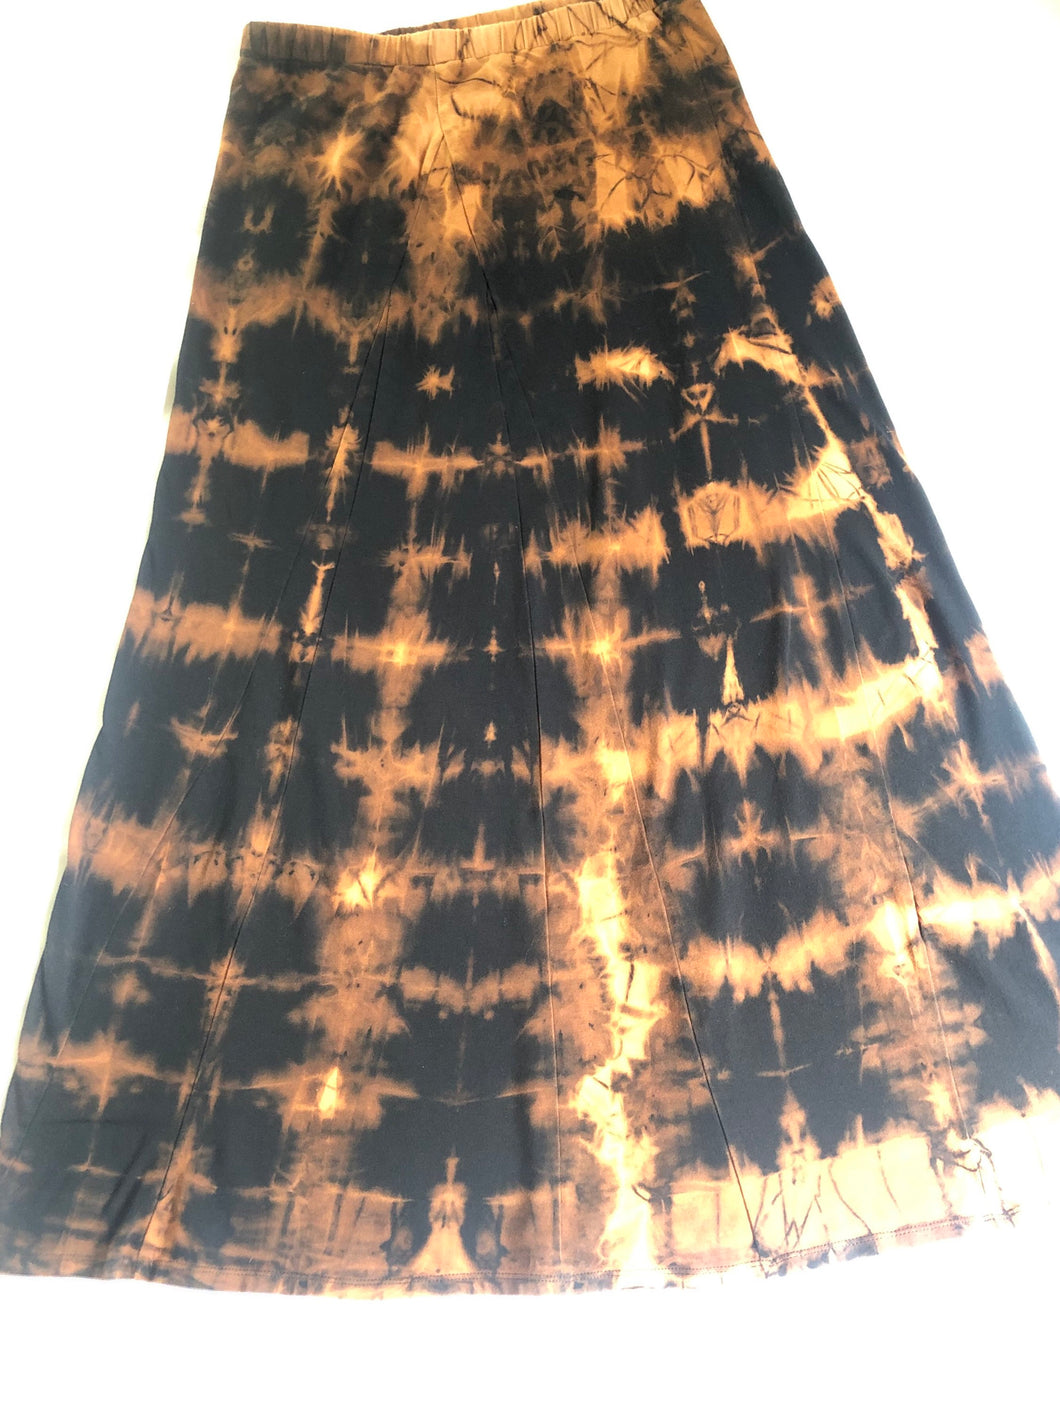 Small Black Maxi Skirt Upcycled with Shibori Technique One of a Kind